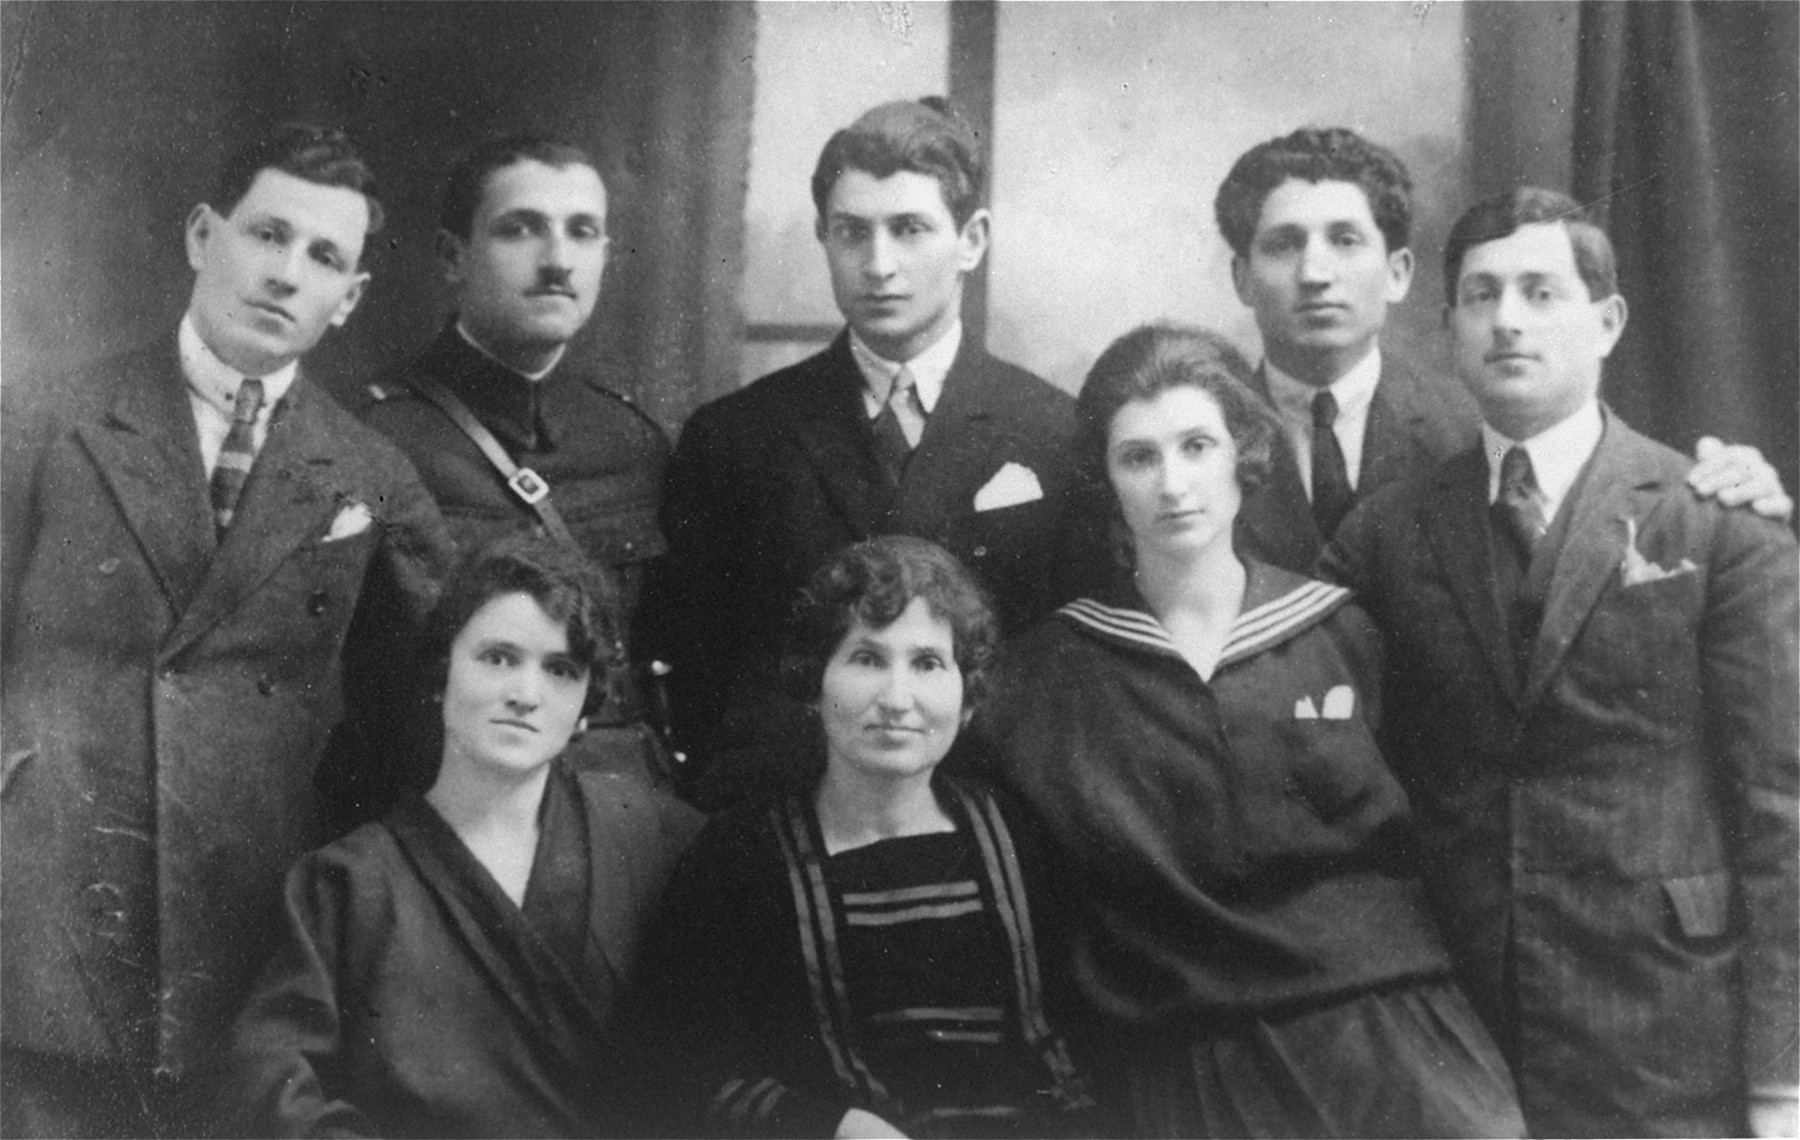 DURING THESE DIFFICULT TIMES OF THE CORONAVIRUS PANDEMIC, THE WORLD JEWISH RESTITUTION ORGANIZATION (WJRO) ANNOUNCES PAYMENTS TO ROMANIAN HOLOCAUST SURVIVORS IN ISRAEL